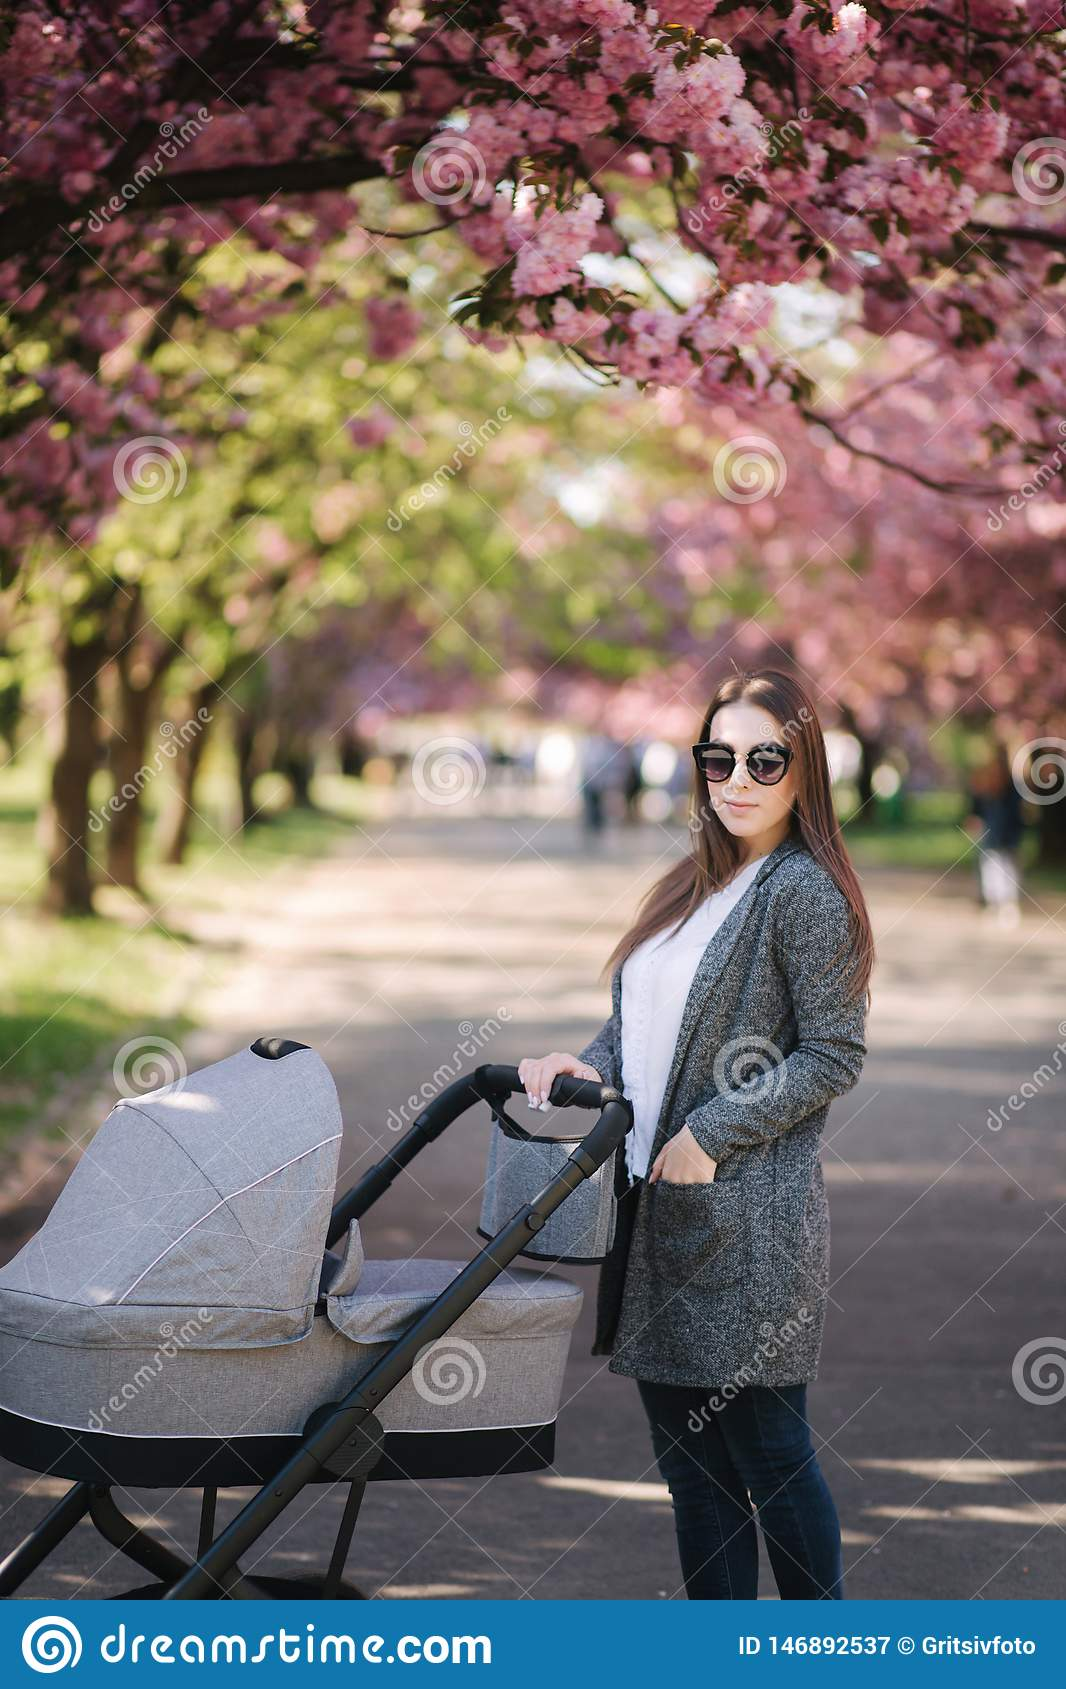 Happy mom walk with her little baby girl in stroller. Background of pink sakura tree